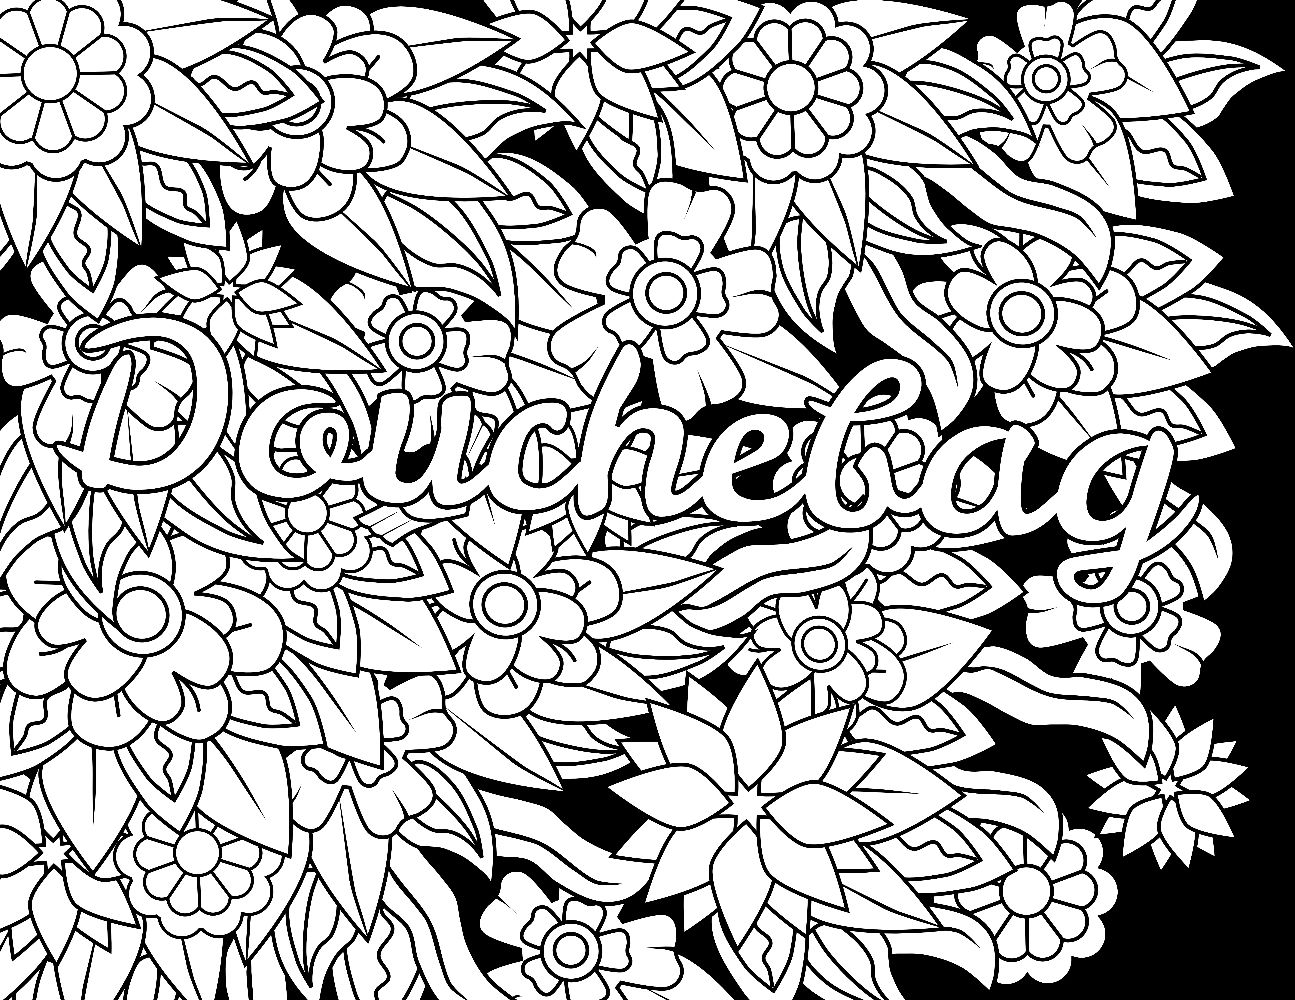 coloring pages swear words printable - douchebag swear word coloring page adult coloring page